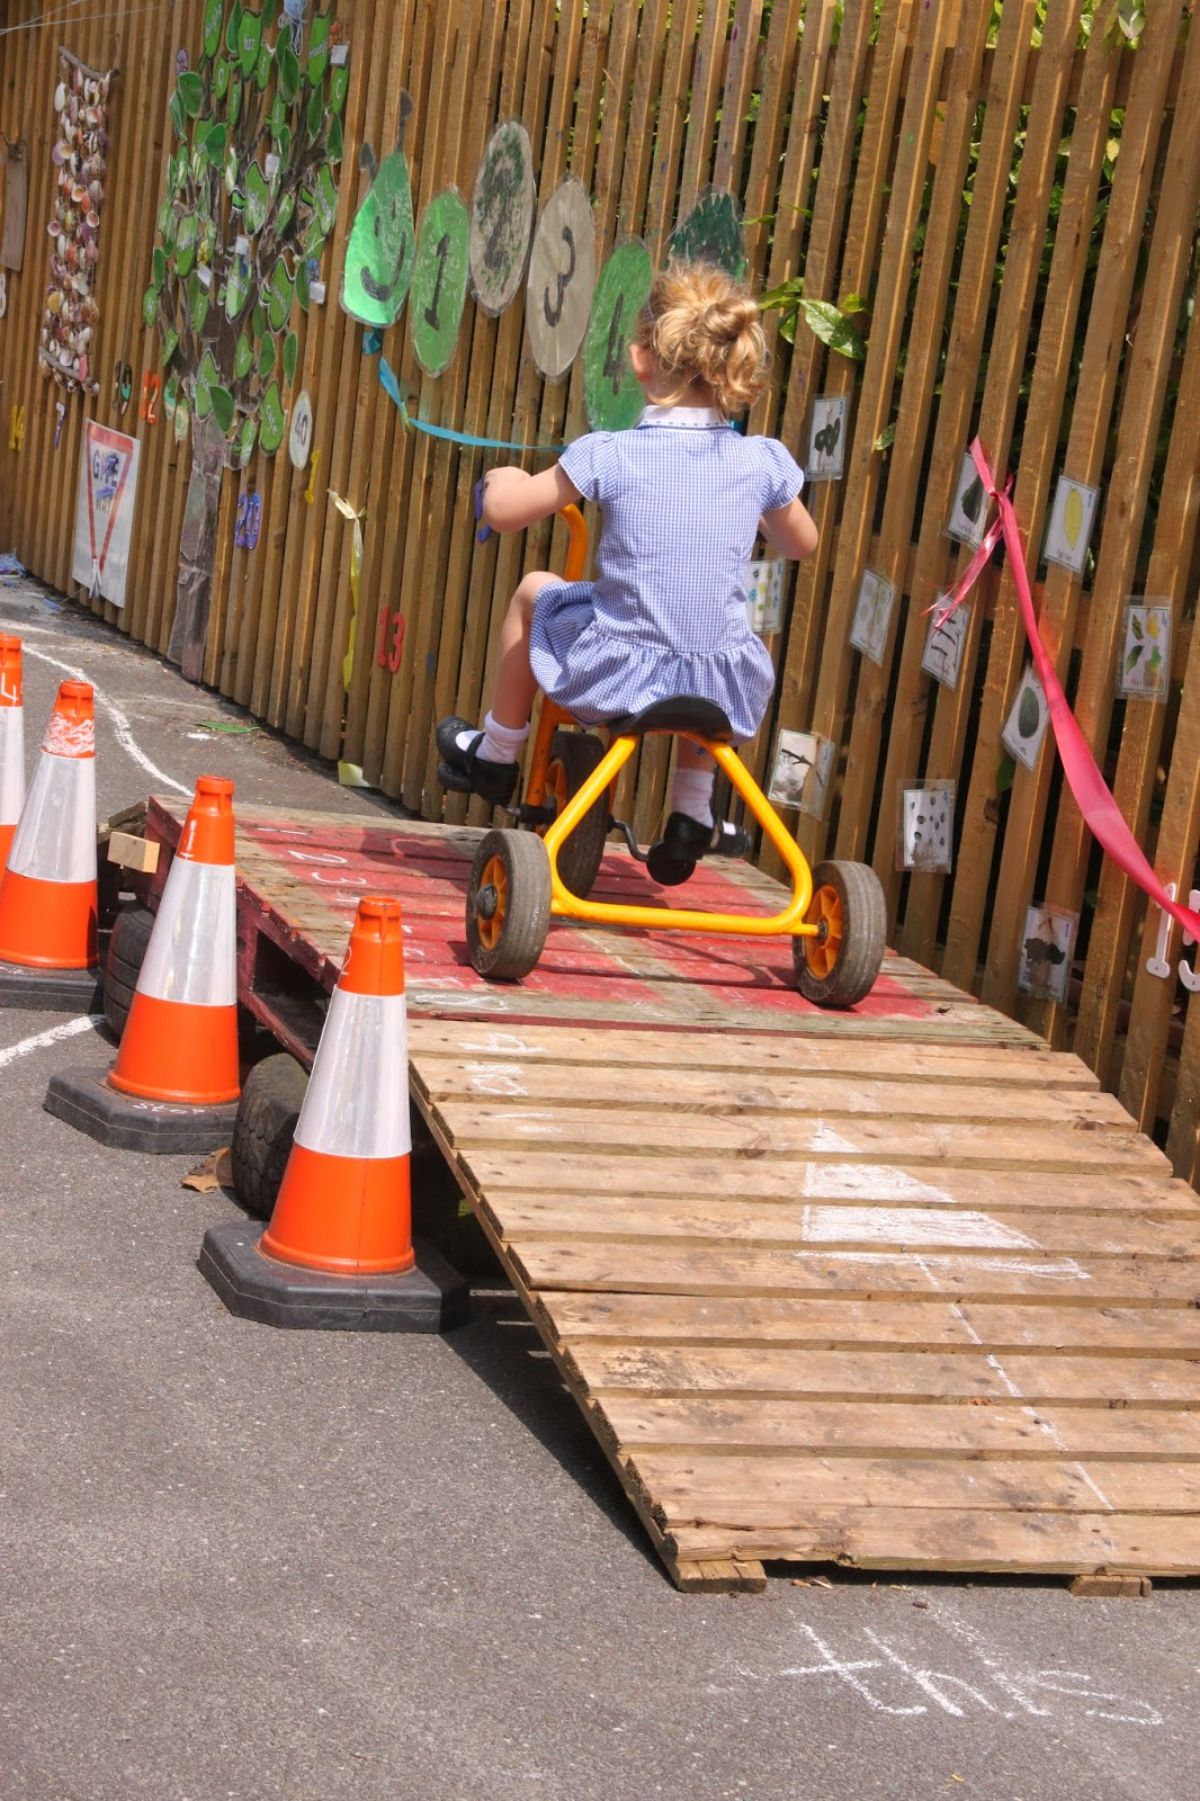 A rear view of a girl in a blue dress riding a tricyycle over a ramp made of pallets